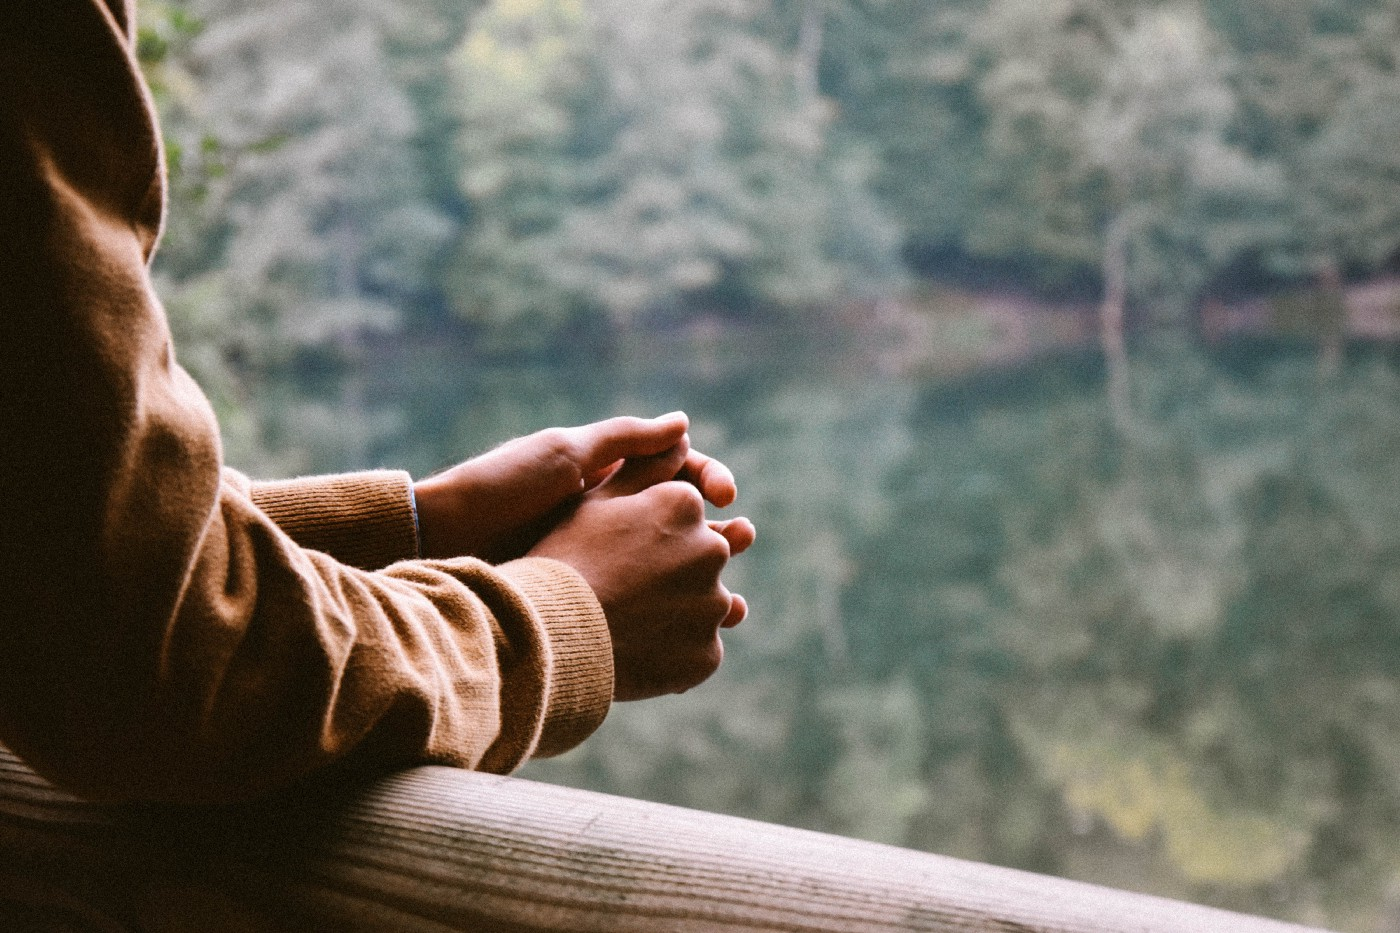 arms held pensively on a rail before a blurred background of trees and a lake